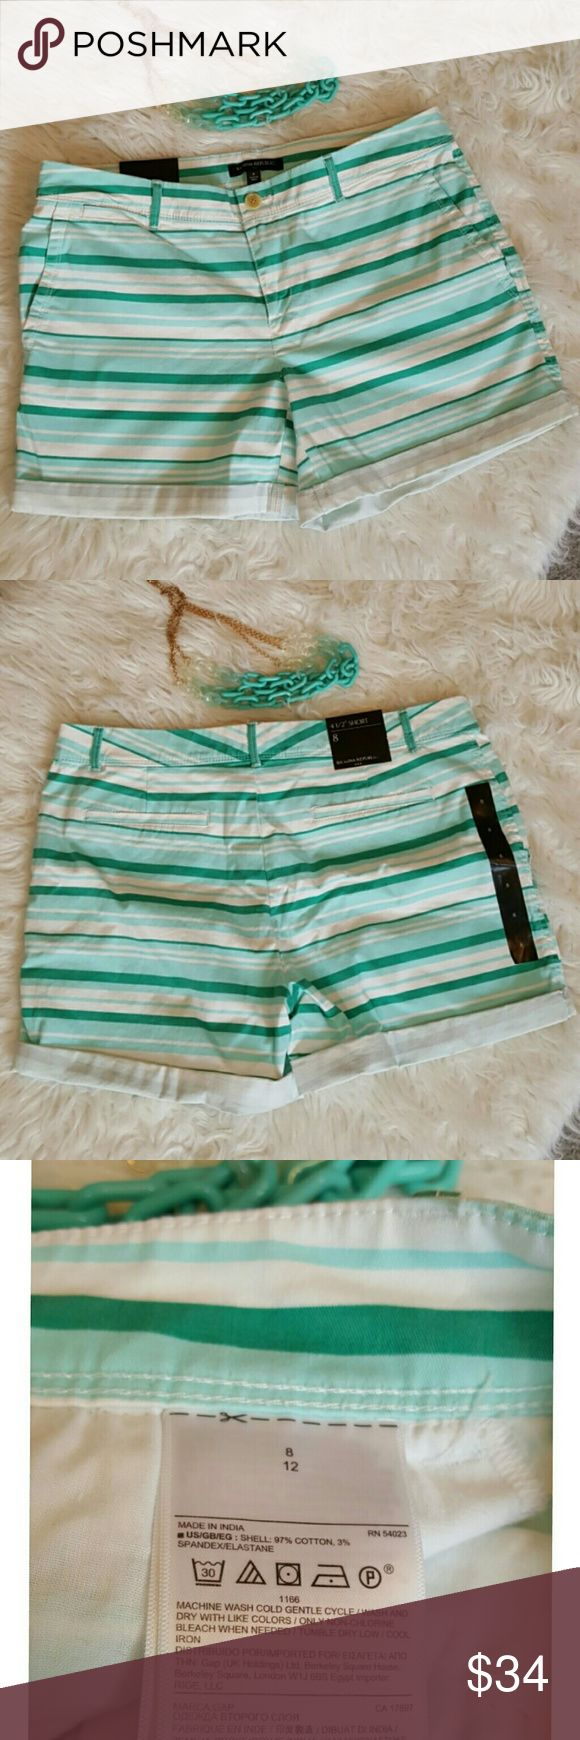 "NWT Banana Republic Women's Shorts Light and dark mint/white striped shorts perfect for summer!😎  Shell: 97% cotton/3% spandex Waist 17-3/4"" 4-1/2"" inseam  Necklace for sale @sidrs $7 Banana Republic Shorts"